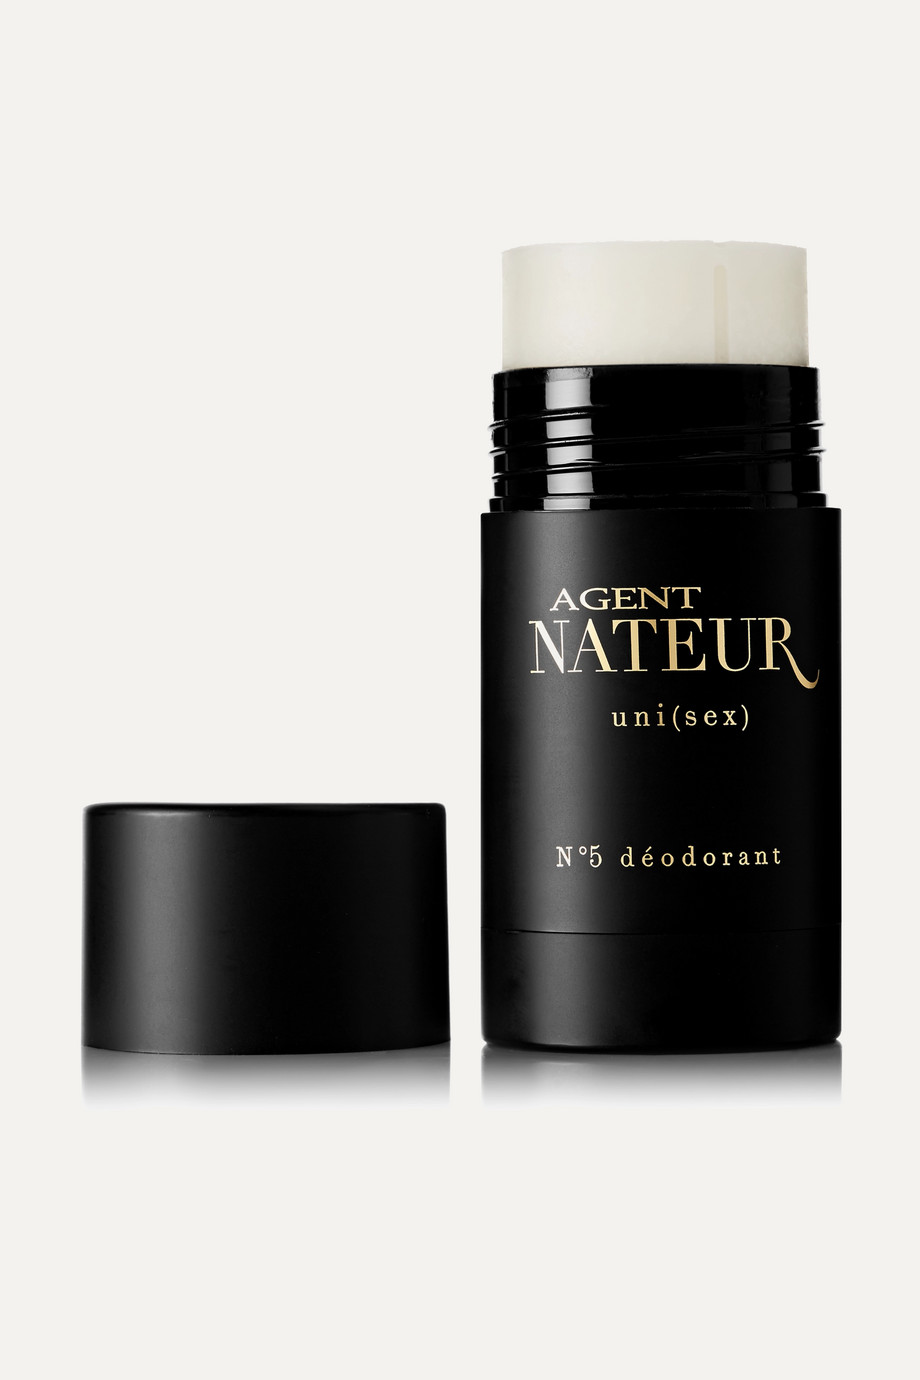 Agent Nateur uni(sex) No.5 Deodorant, 50ml